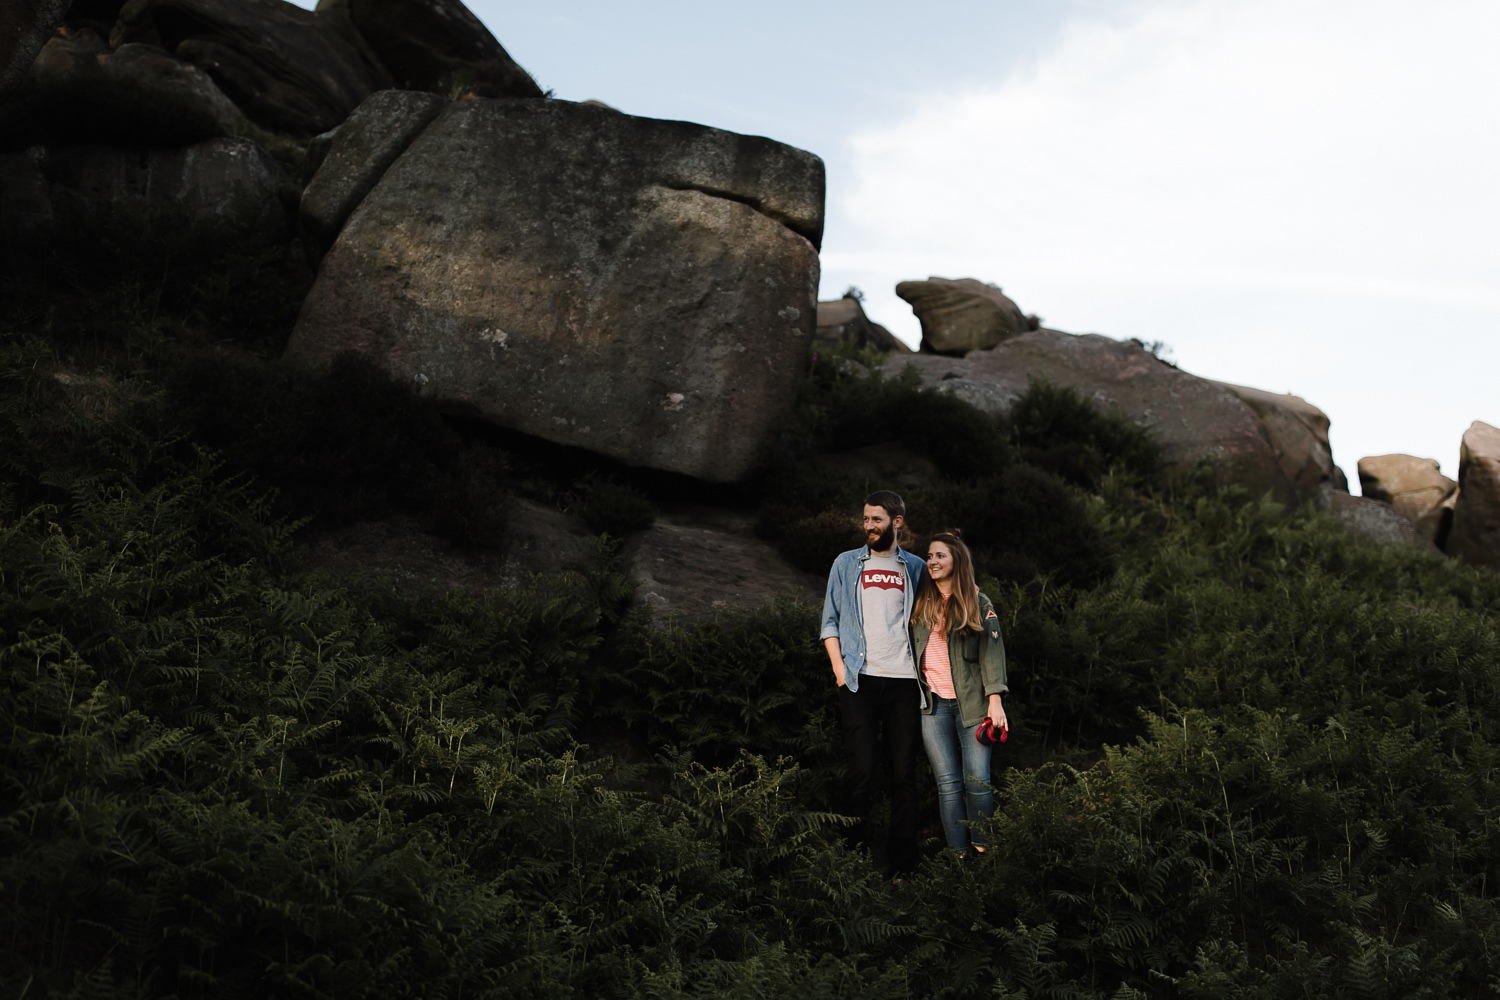 Peak_District_Engagement_Shoot_Prewed_Couple_Shoot_-58.jpg